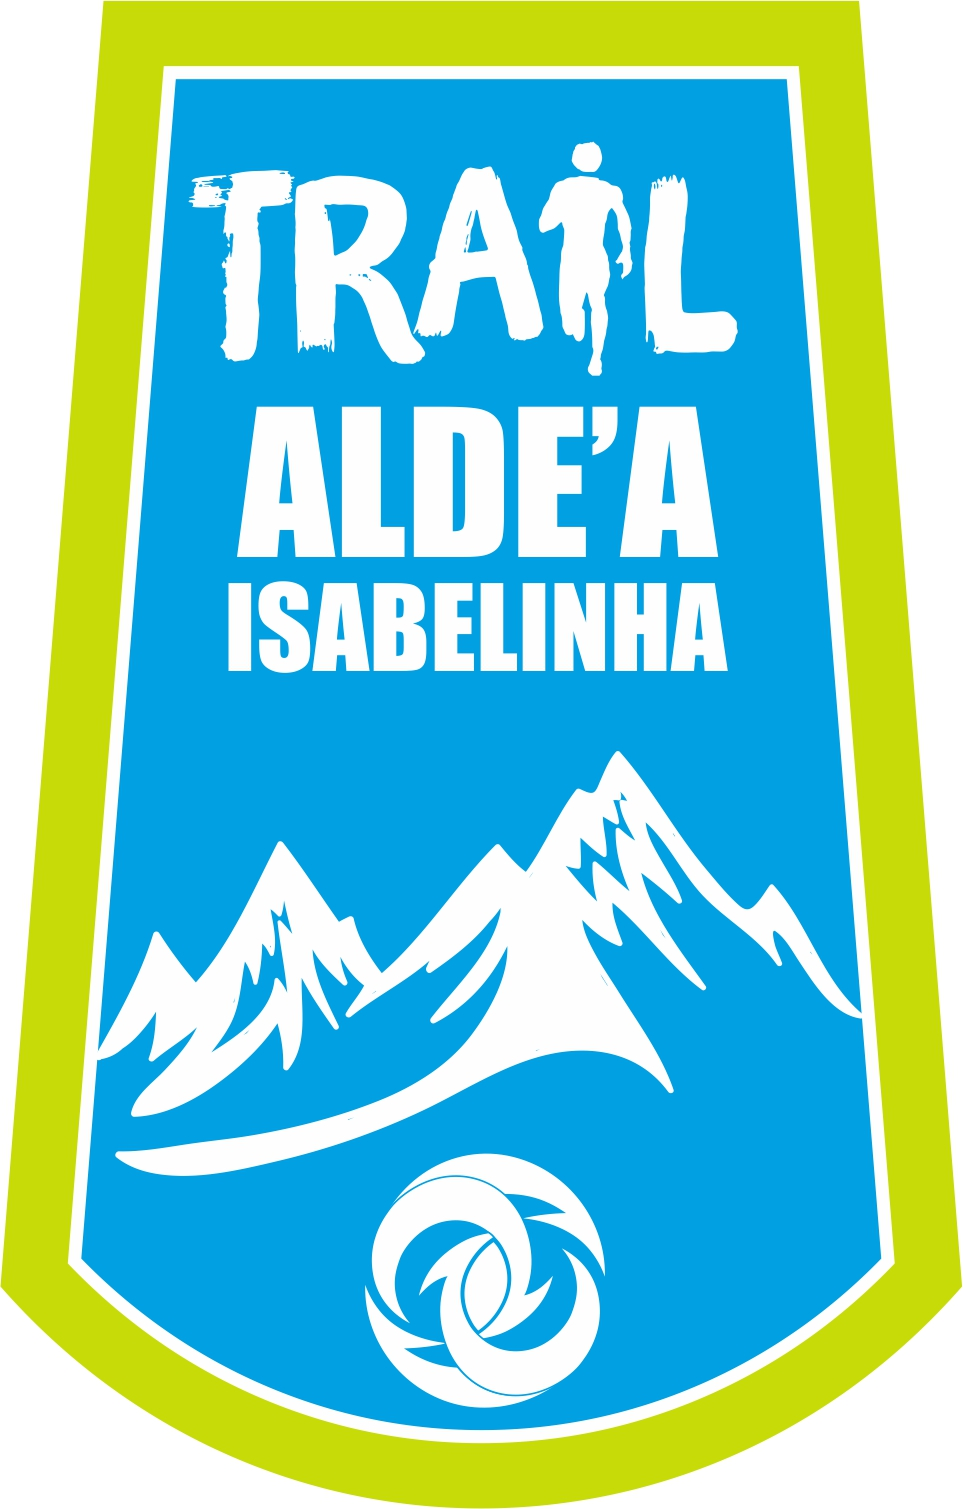 LOGOTIPO TRAIL ALDEA ISABELINHA_SHIELD.jpg